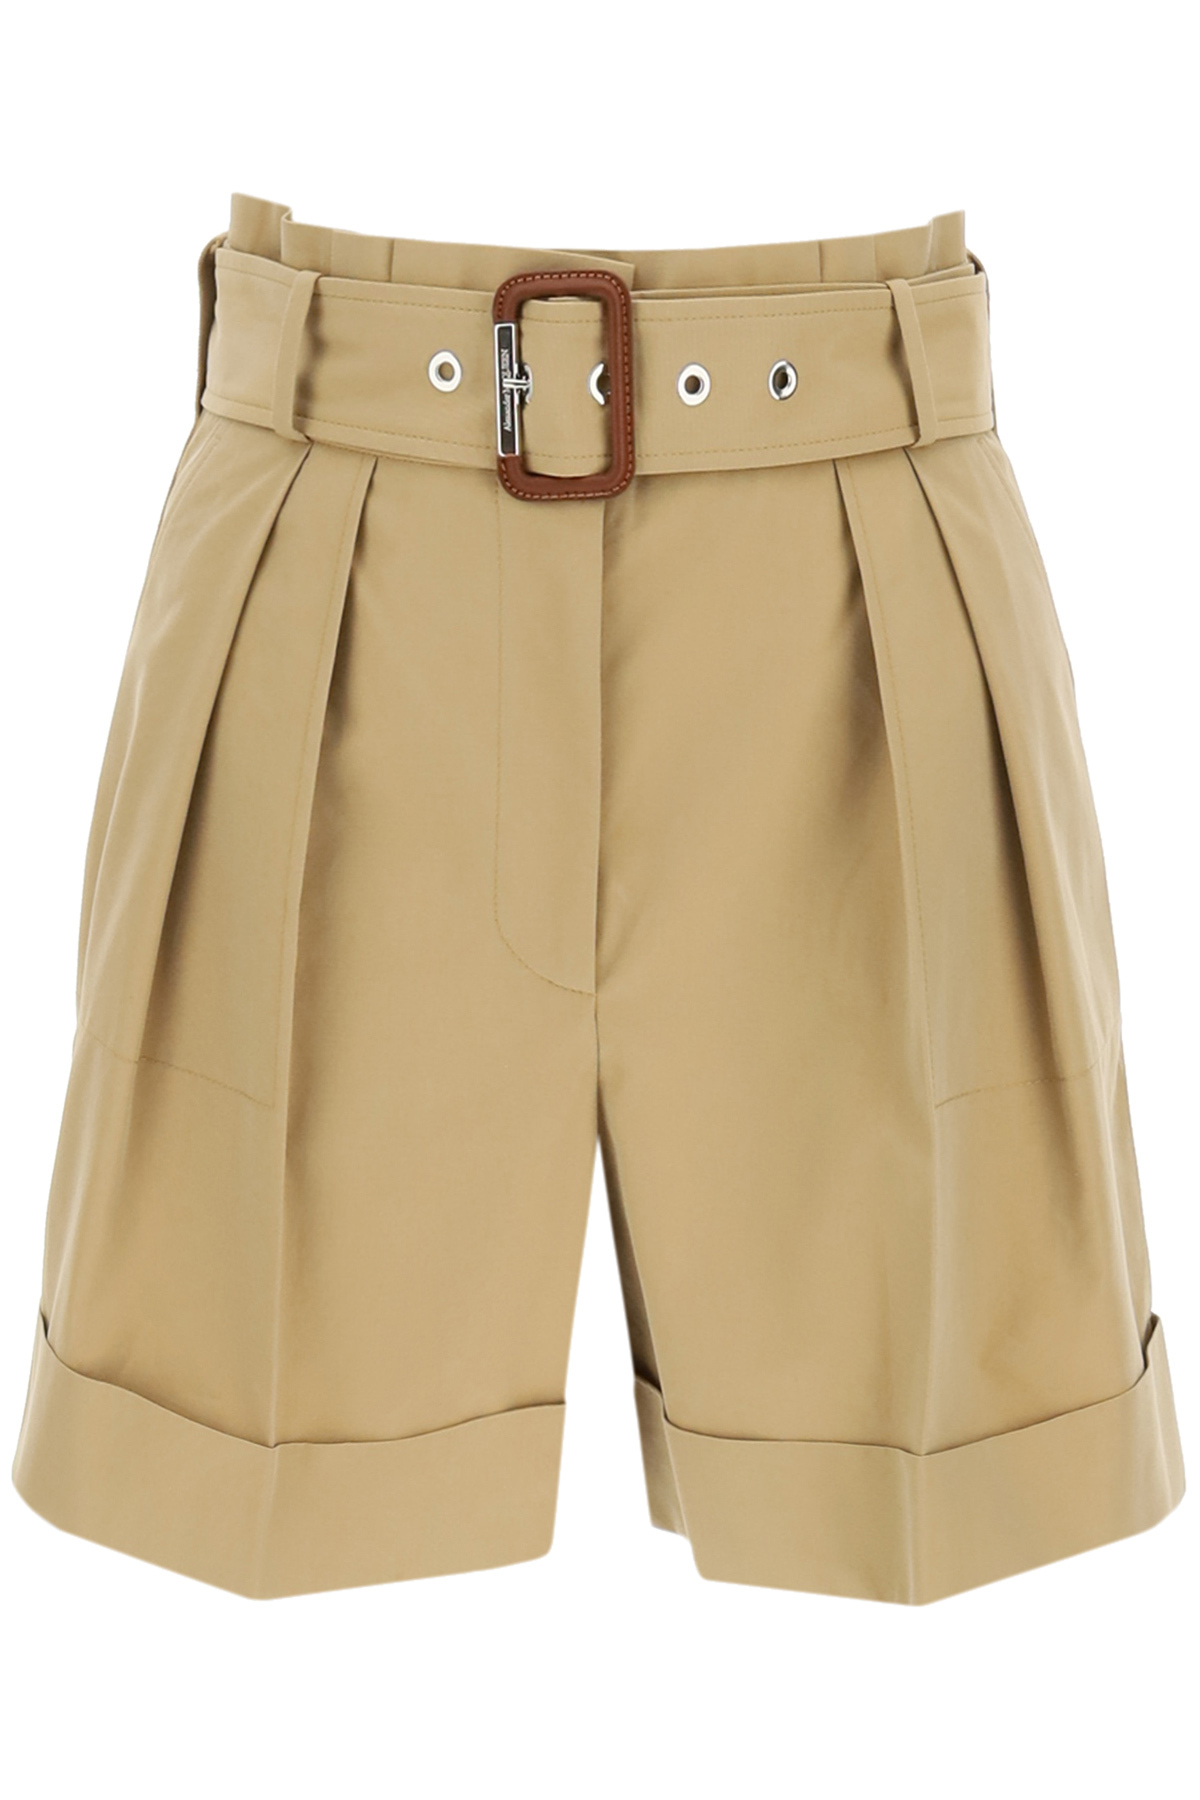 ALEXANDER MCQUEEN BELTED COTTON SHORTS 42 Beige Cotton